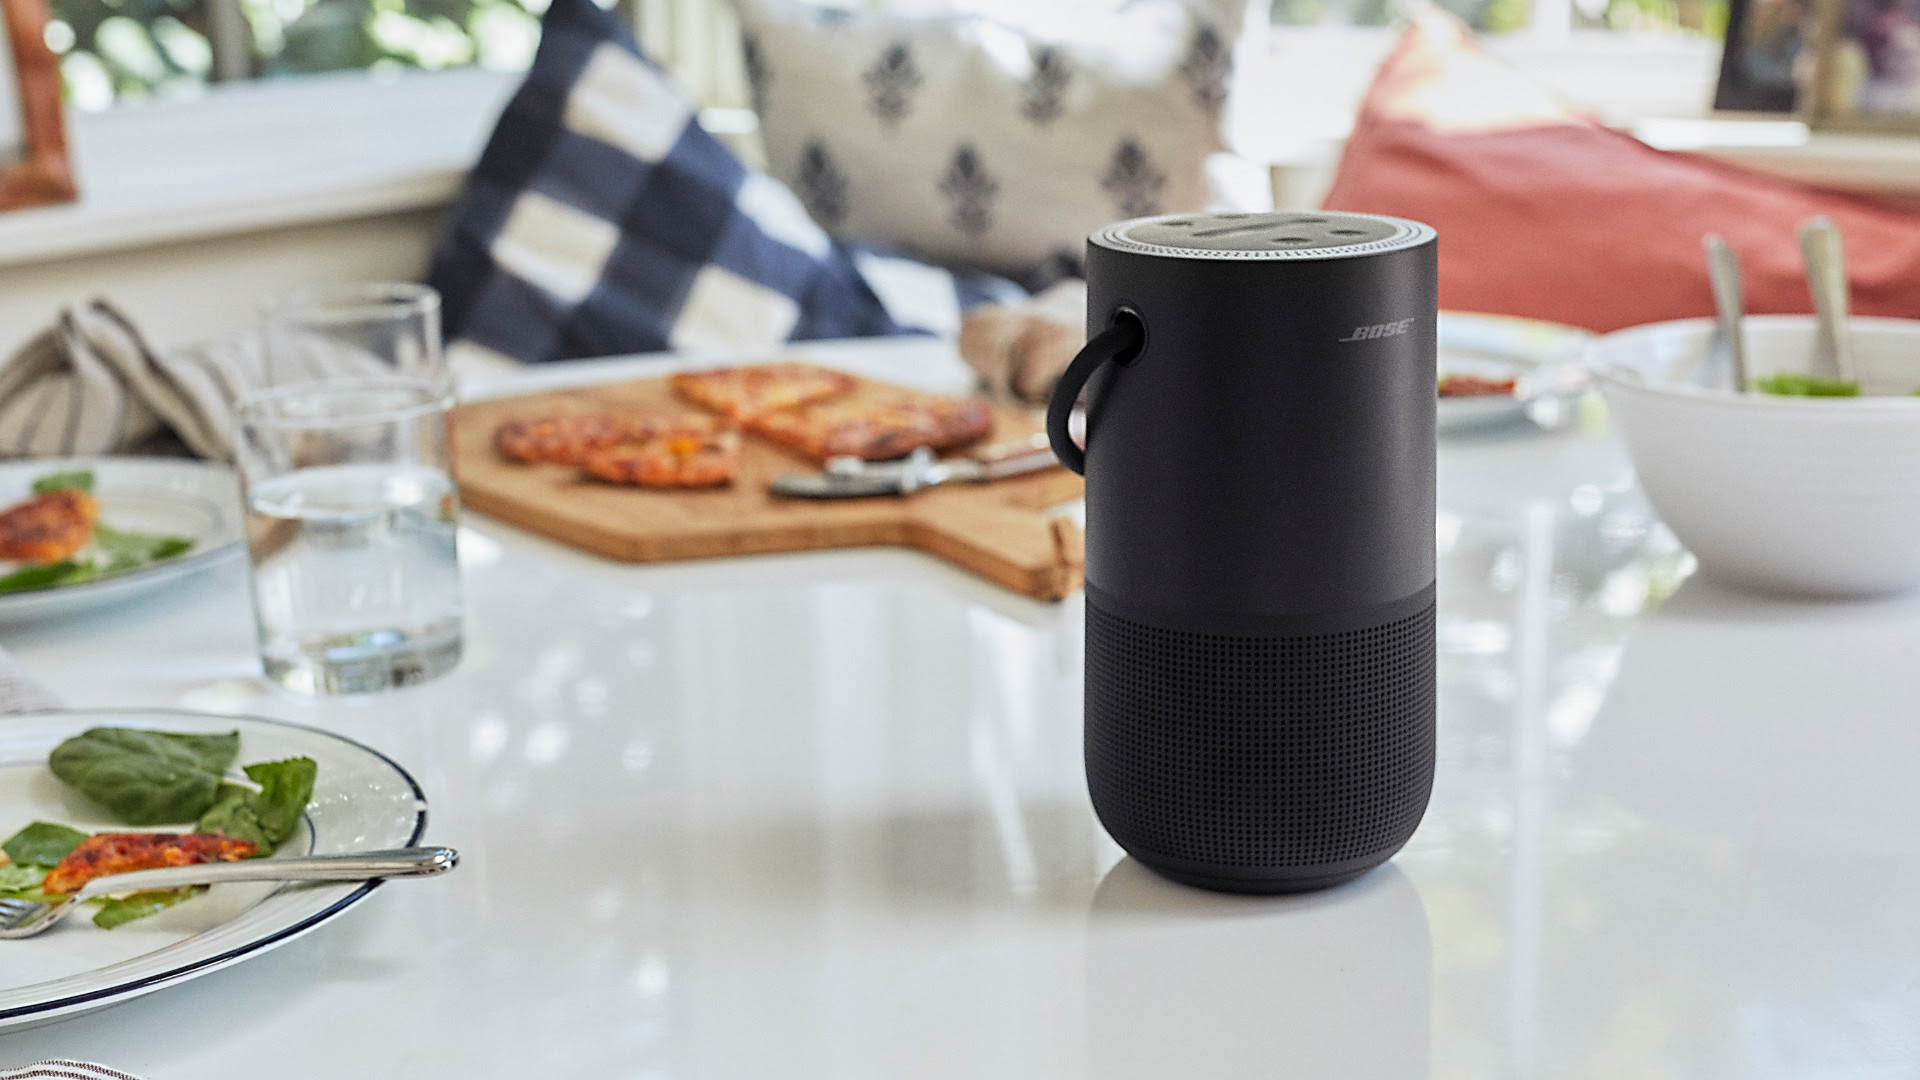 The Bose Portable Home speaker sports sleek looks and 360-degree sound